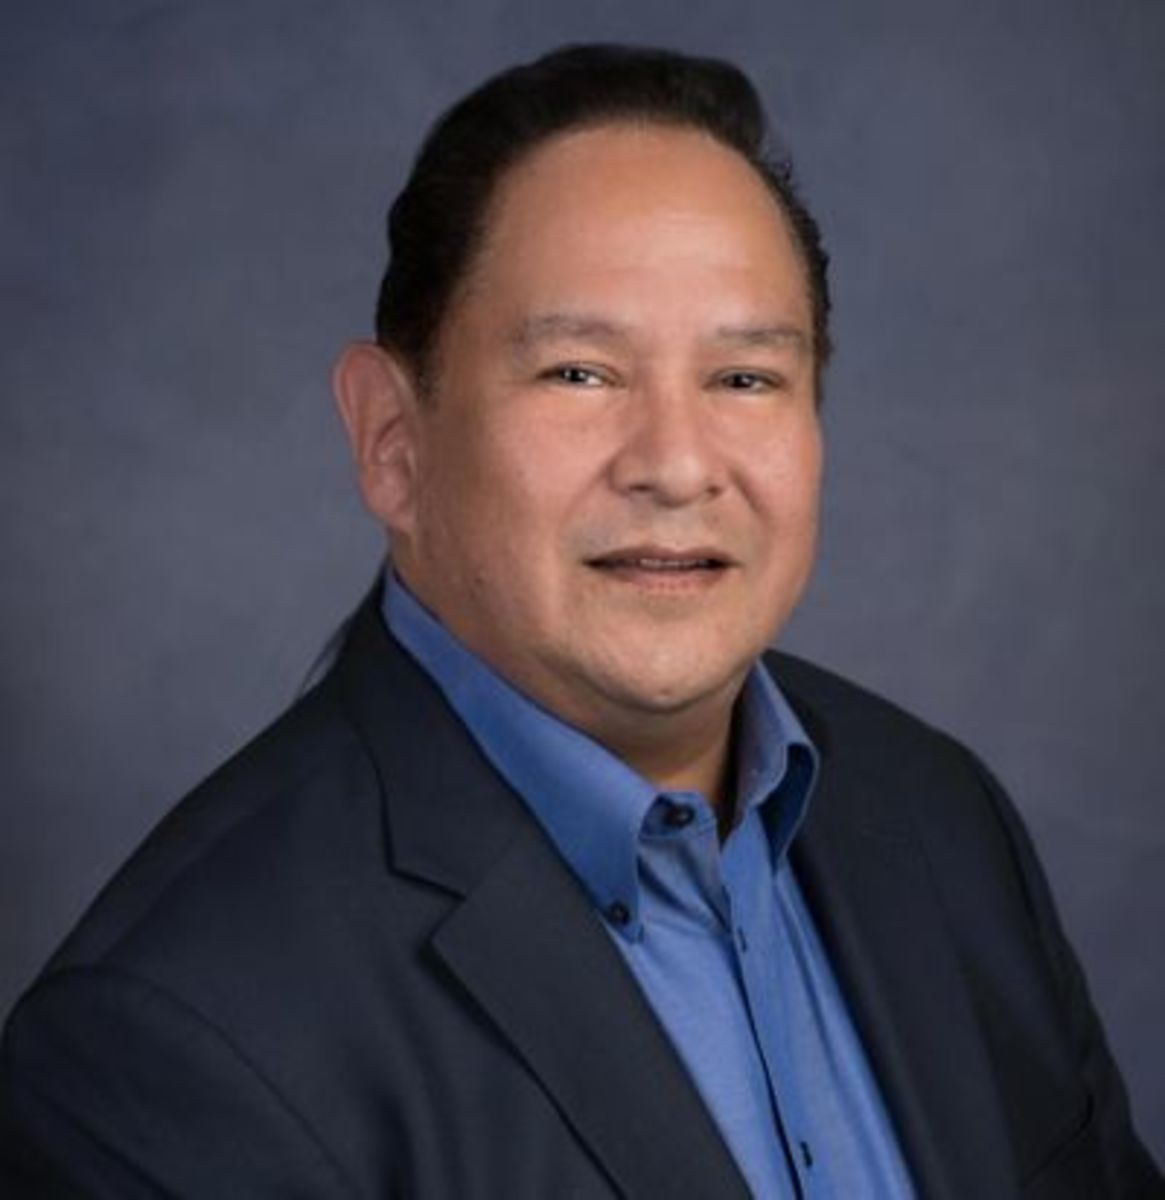 Chris Stearns, Navajo, is running unopposed for the Auburn City Council. (Campaign photo)